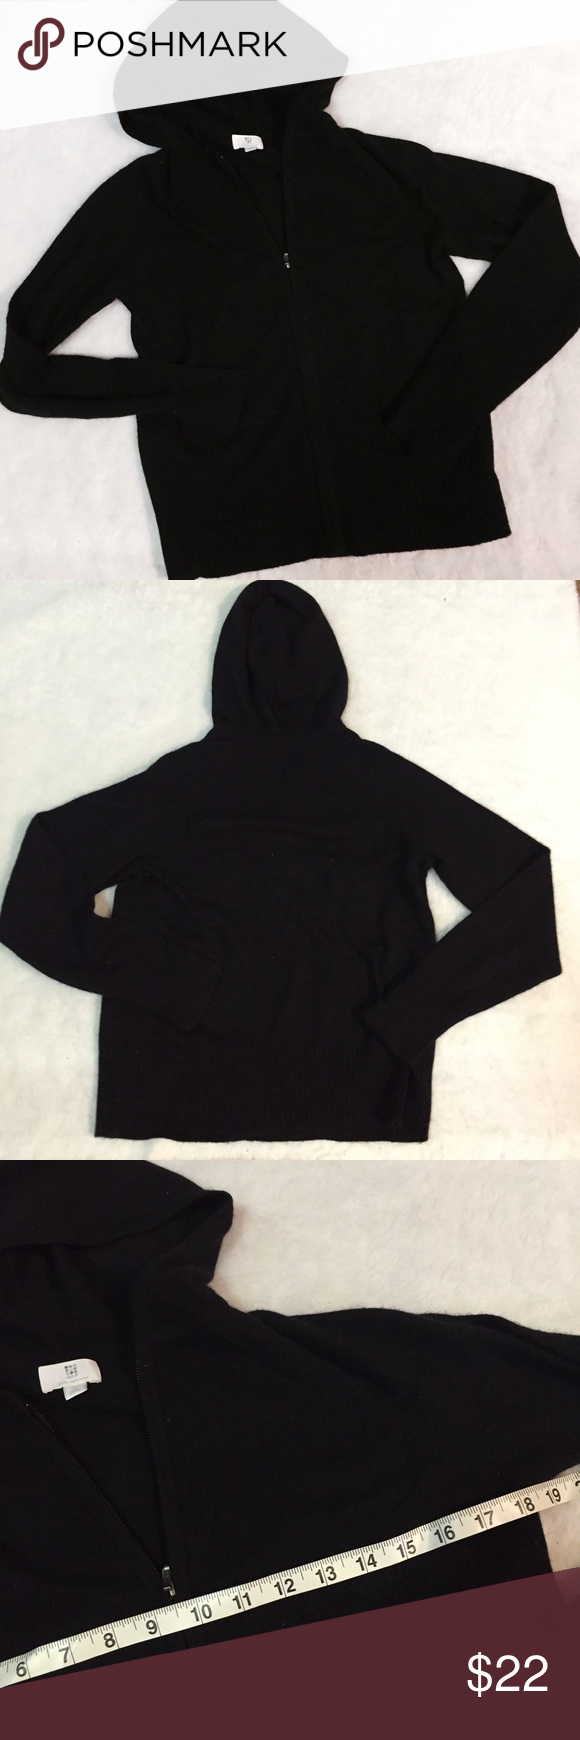 100% cashmere apt. 9 black hooded zip up sweater In very good condition. High quality Apt. 9 Sweaters